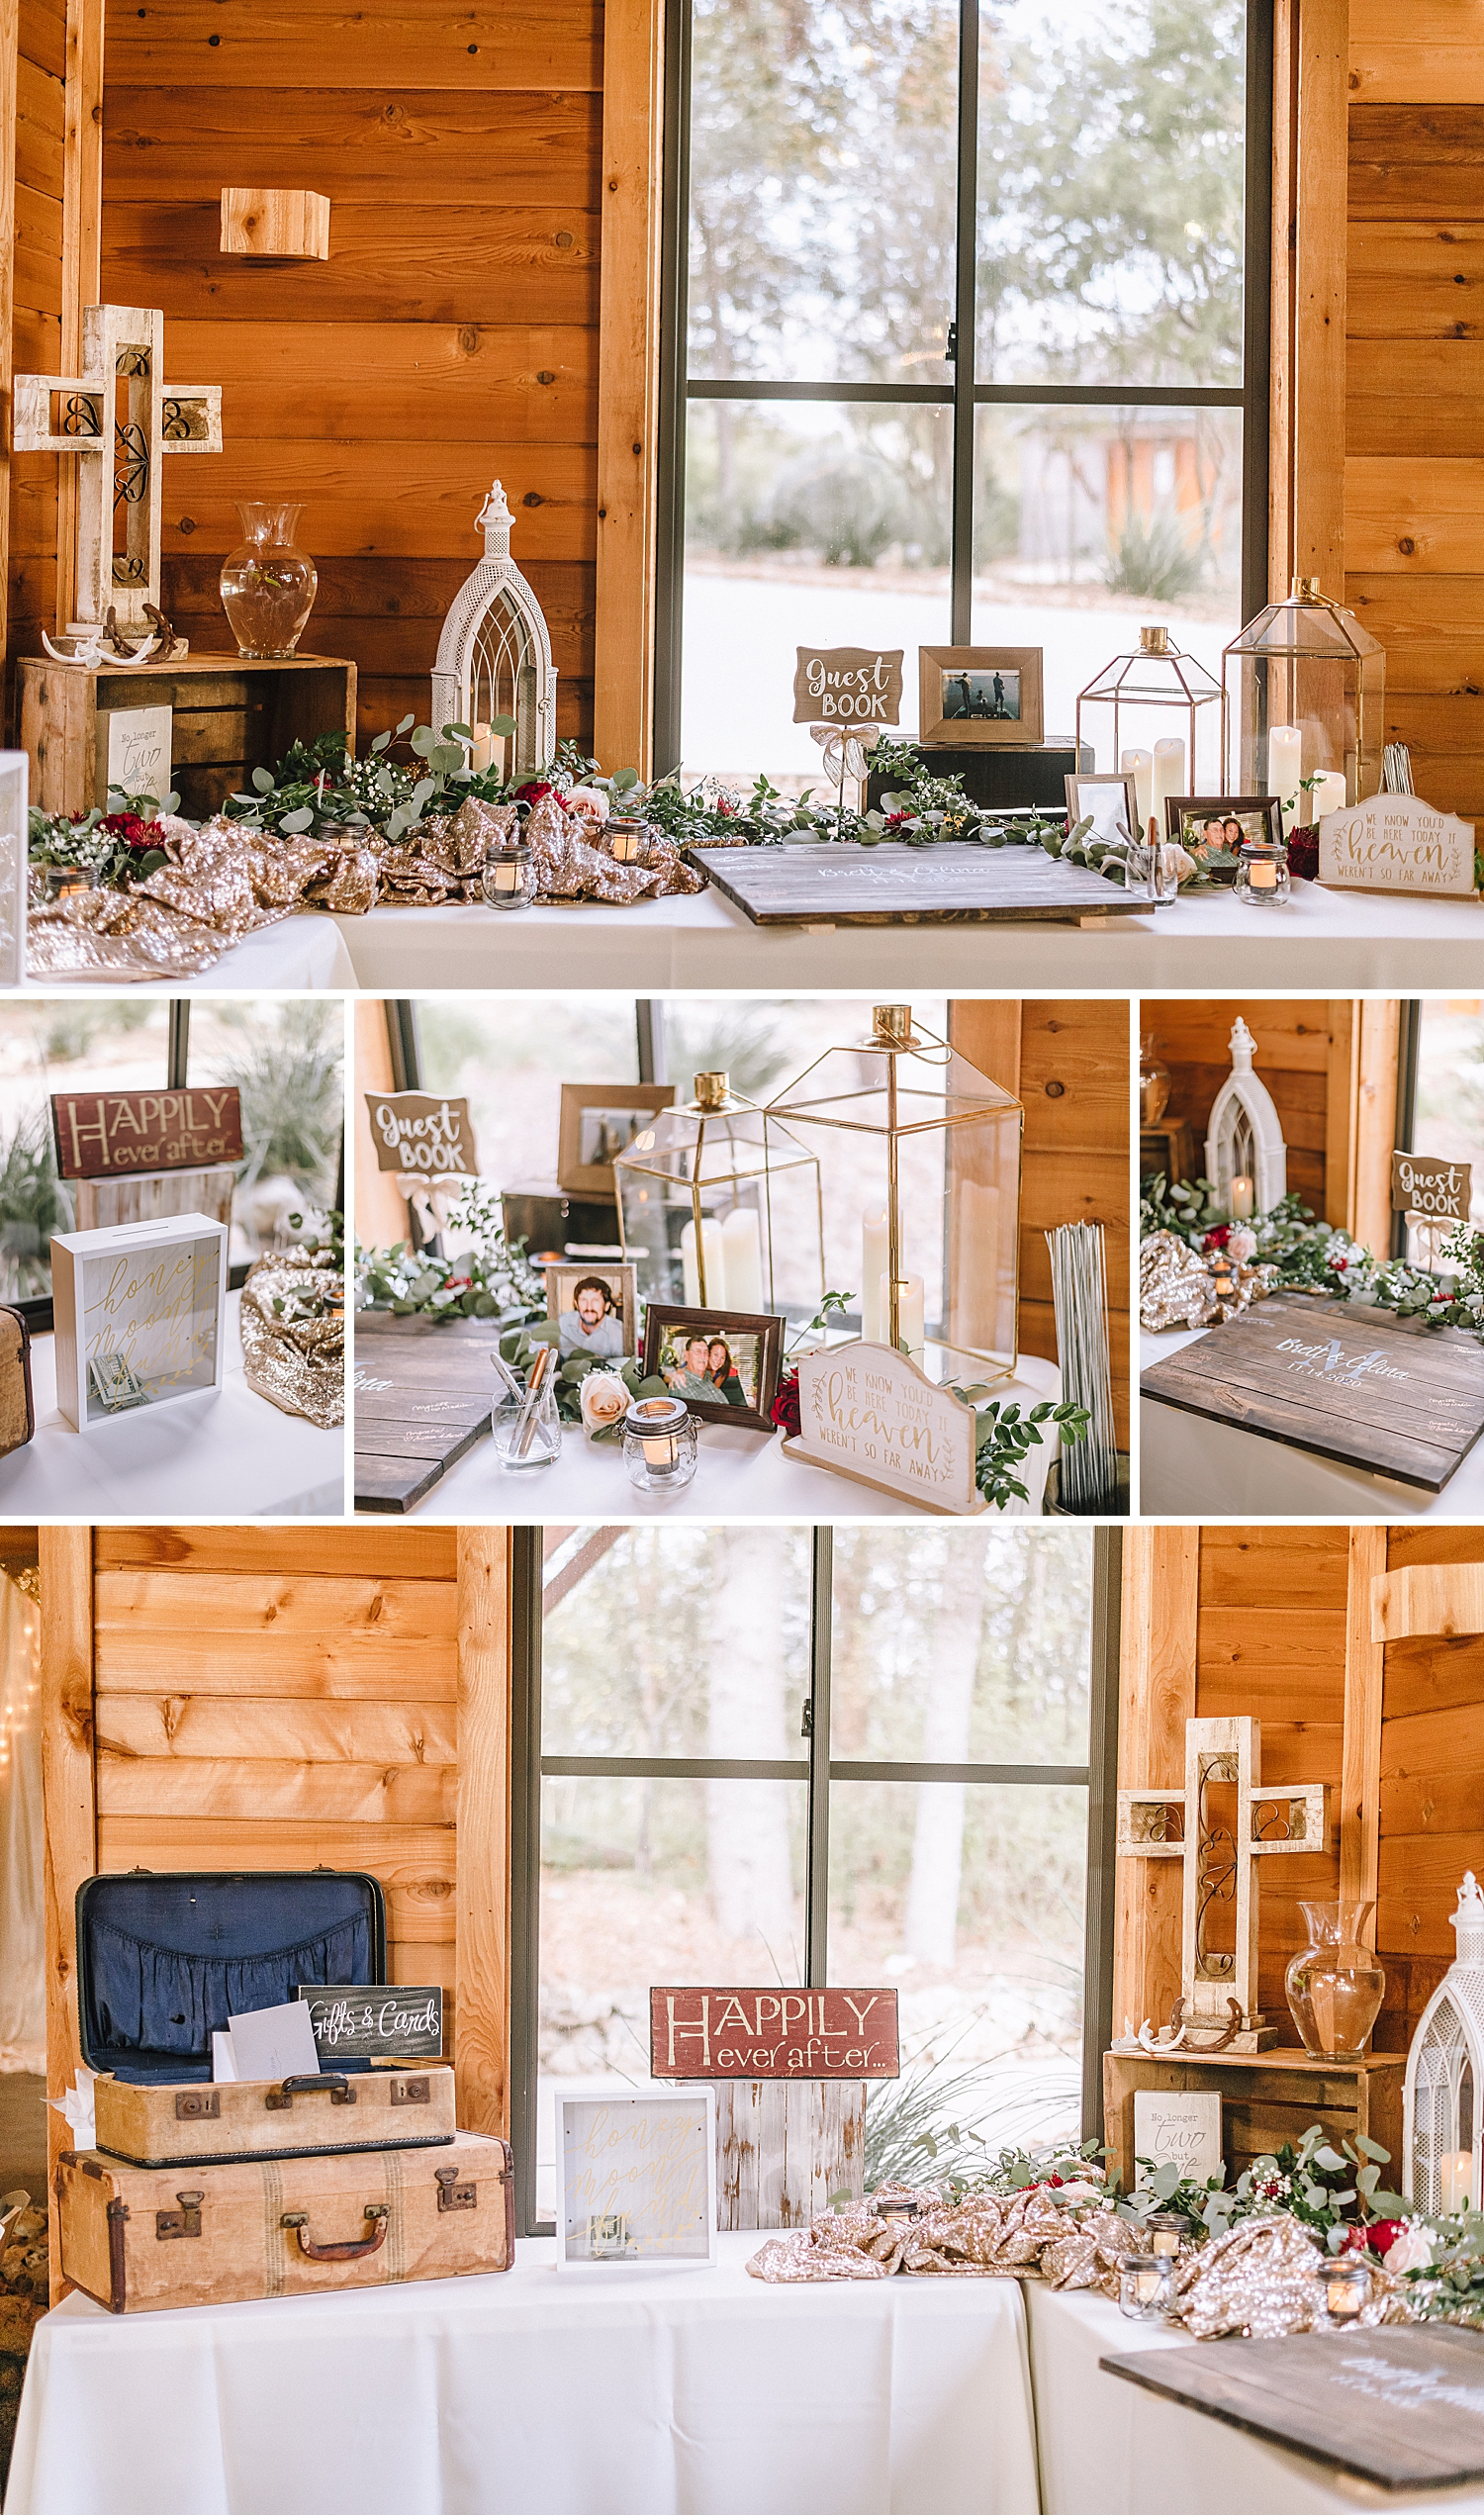 Geronimo-Oaks-Wedding-Venue-Seguin-Texas-Elegant-Navy-Burgundy-Wedding-Carly-Barton-Photography_0008.jpg